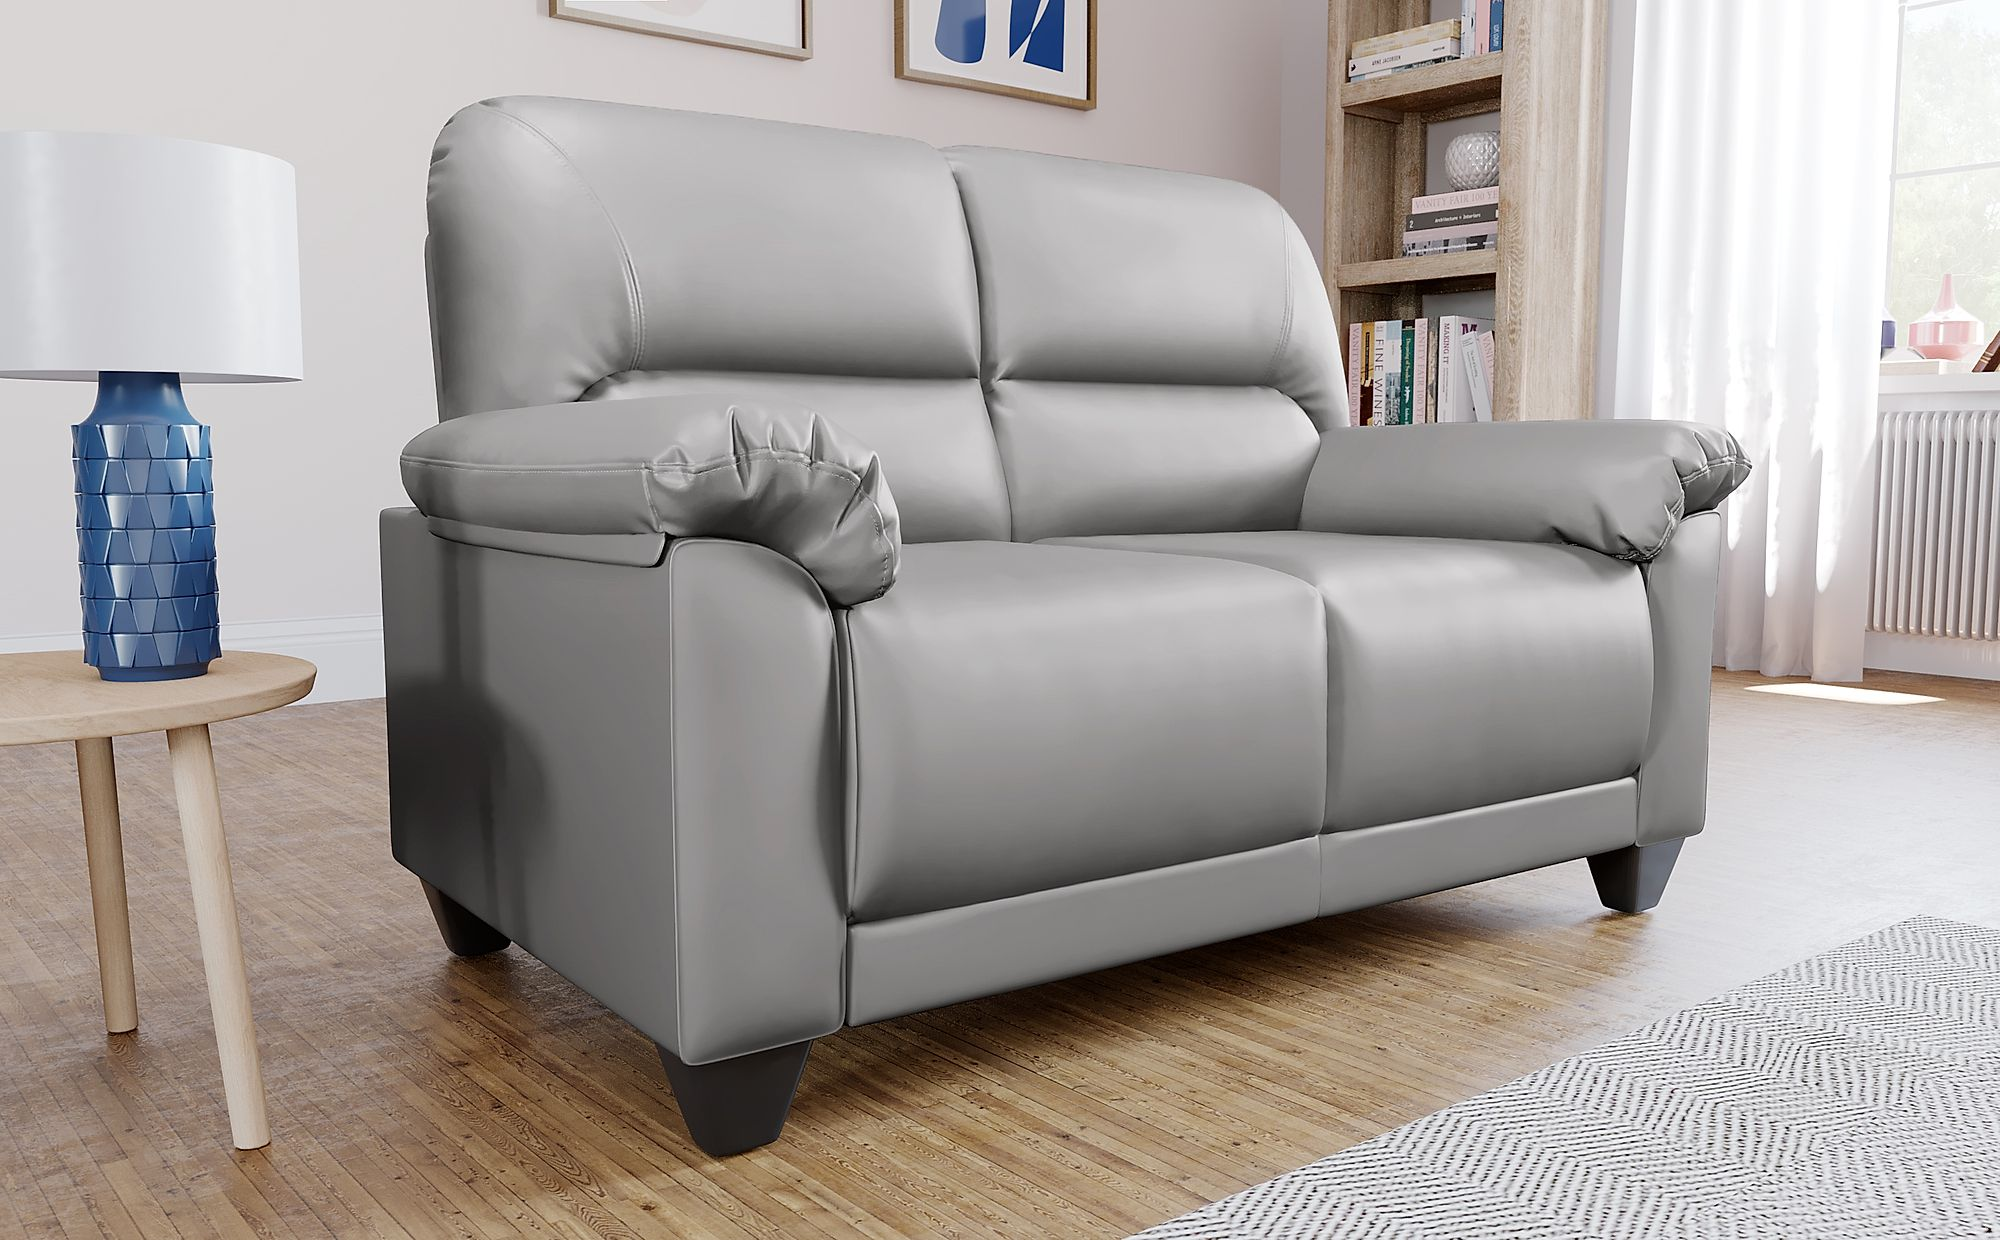 Phenomenal Kenton Small Light Grey Leather Sofa 2 Seater Only 279 99 Home Interior And Landscaping Pimpapssignezvosmurscom